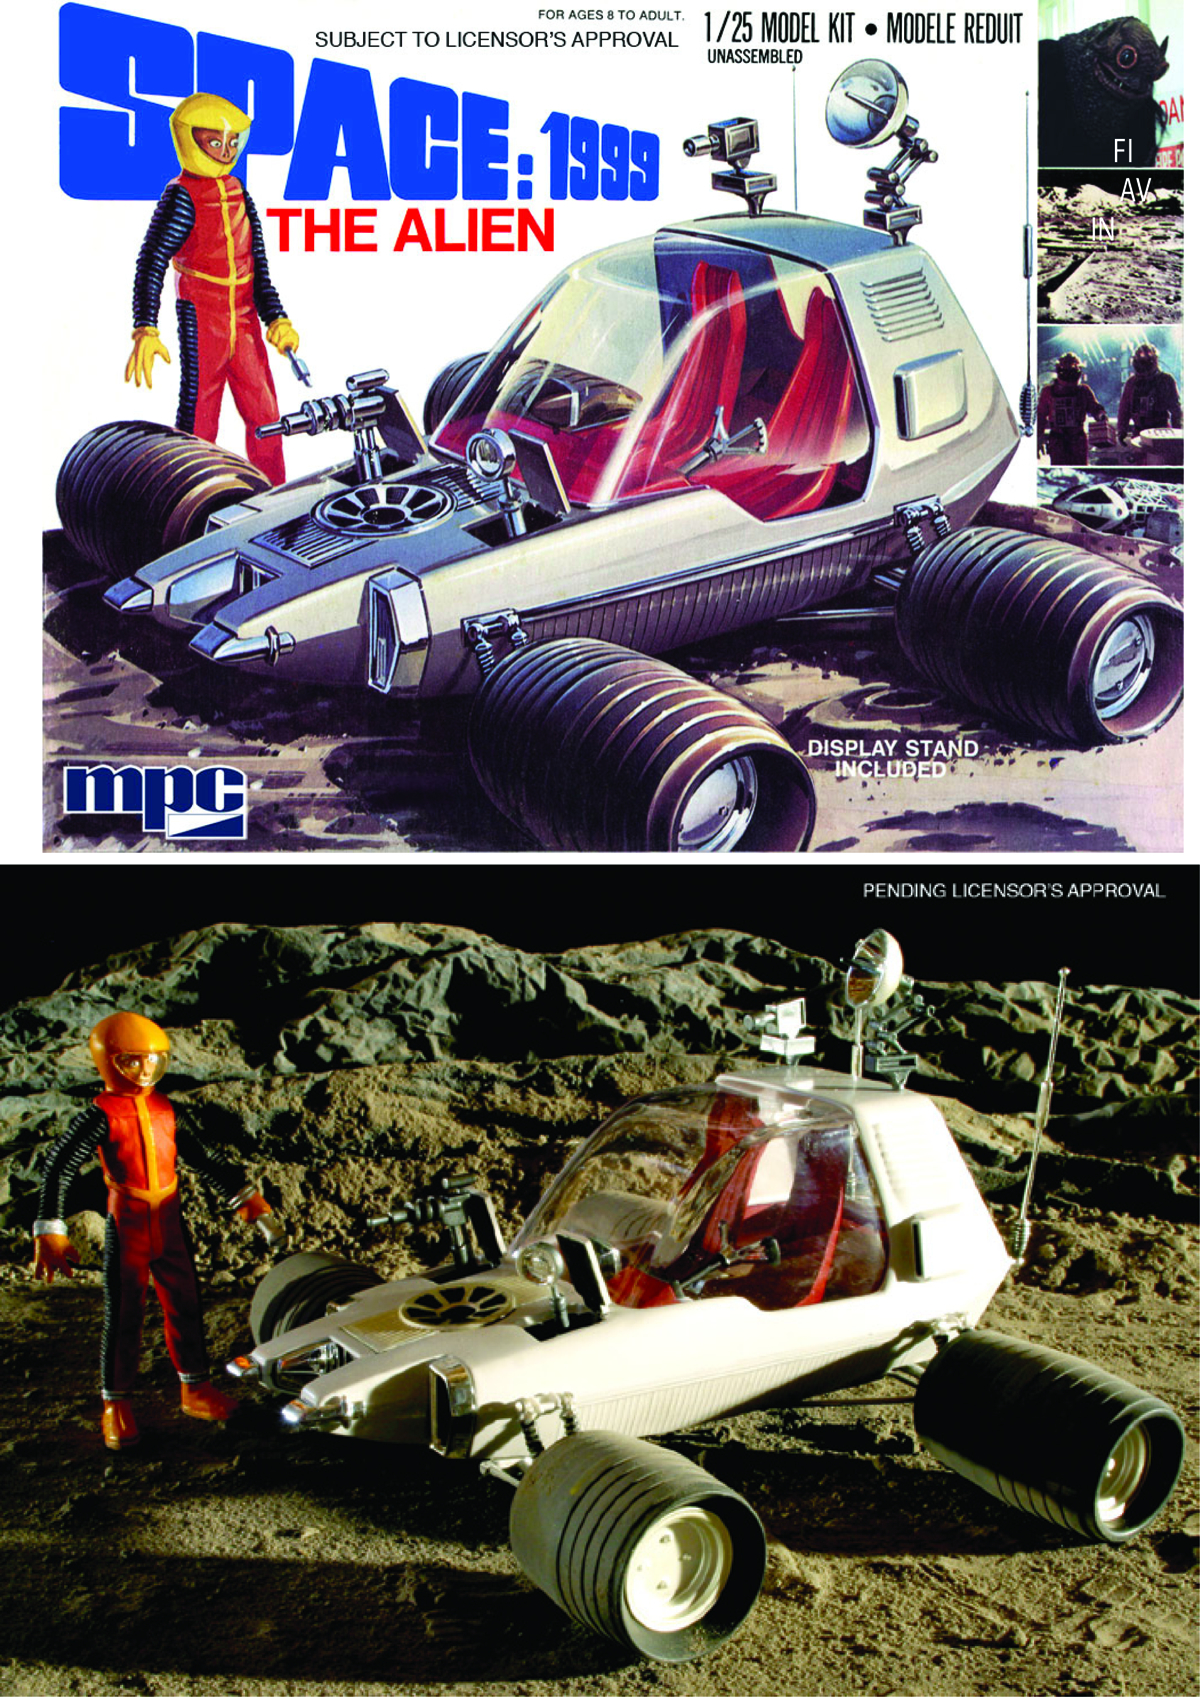 SPACE 1999 ALIEN MOON ROVER 1/25 SCALE MOD KIT